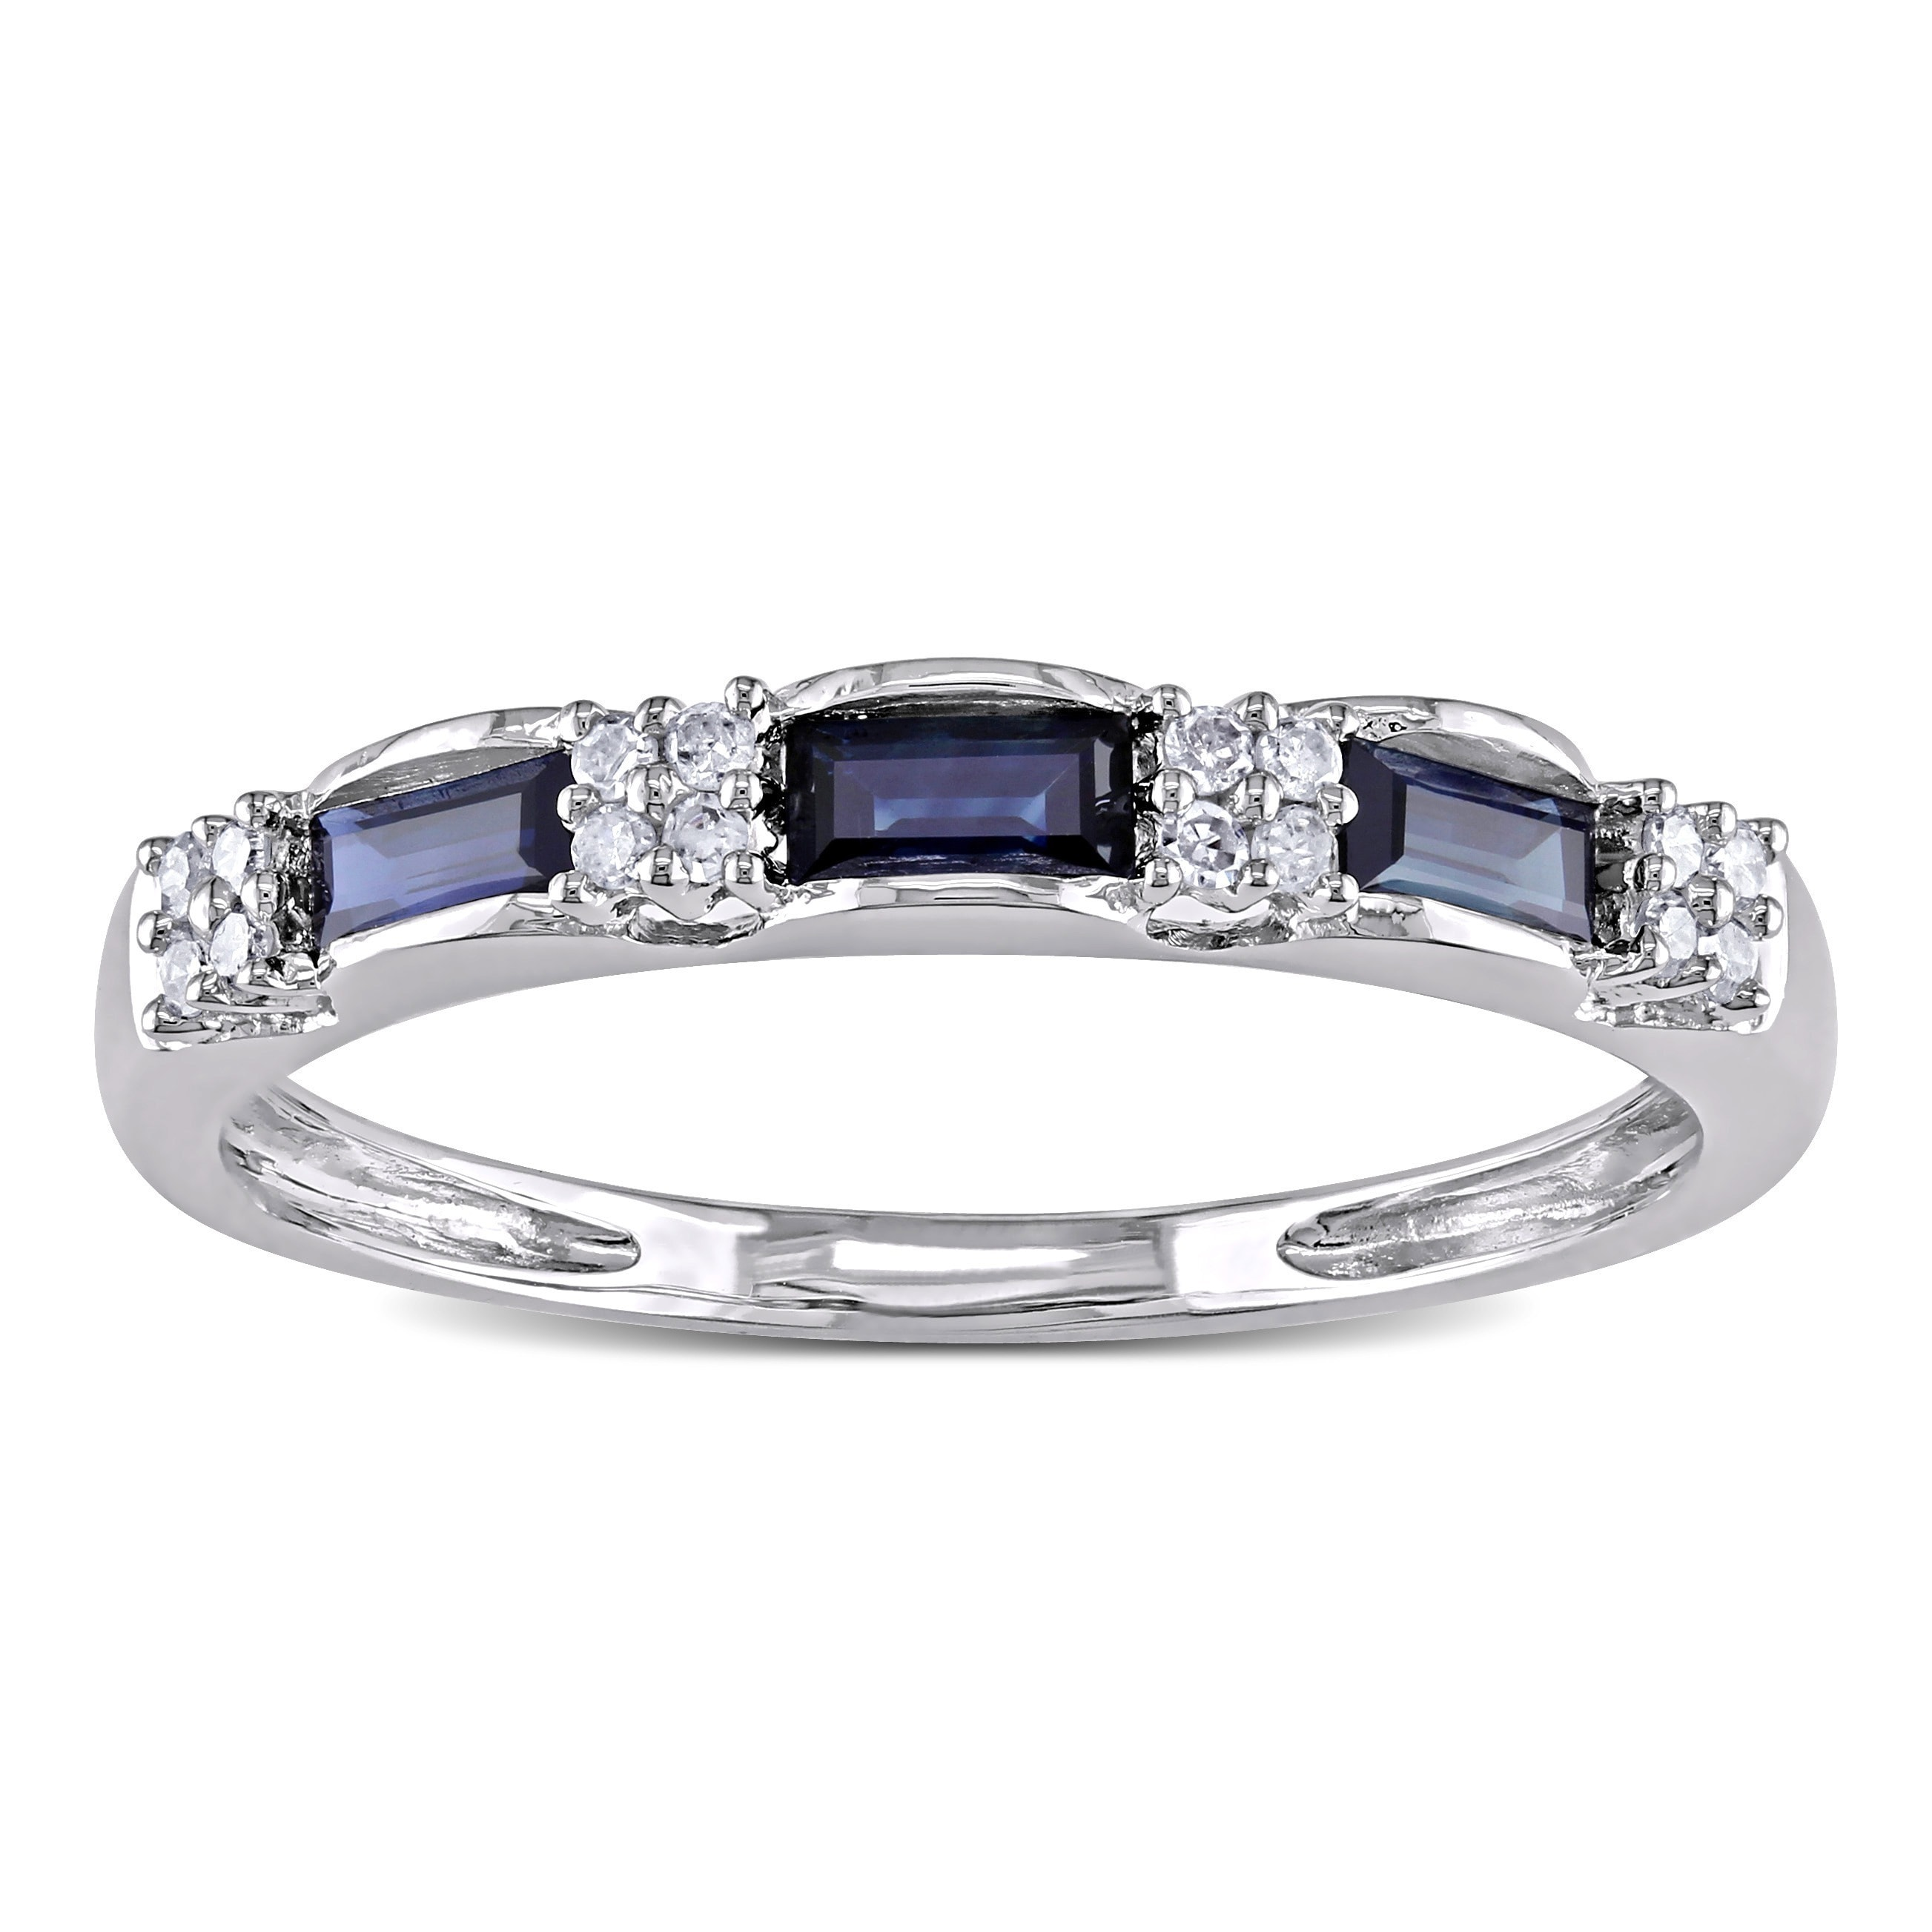 item amid fine of shape sapphire this carats flank mcclelland bands round stone dazzle shapes diamond platinum the blue two a weighing f diamonds three mcteigue sets oval ring thread pear and